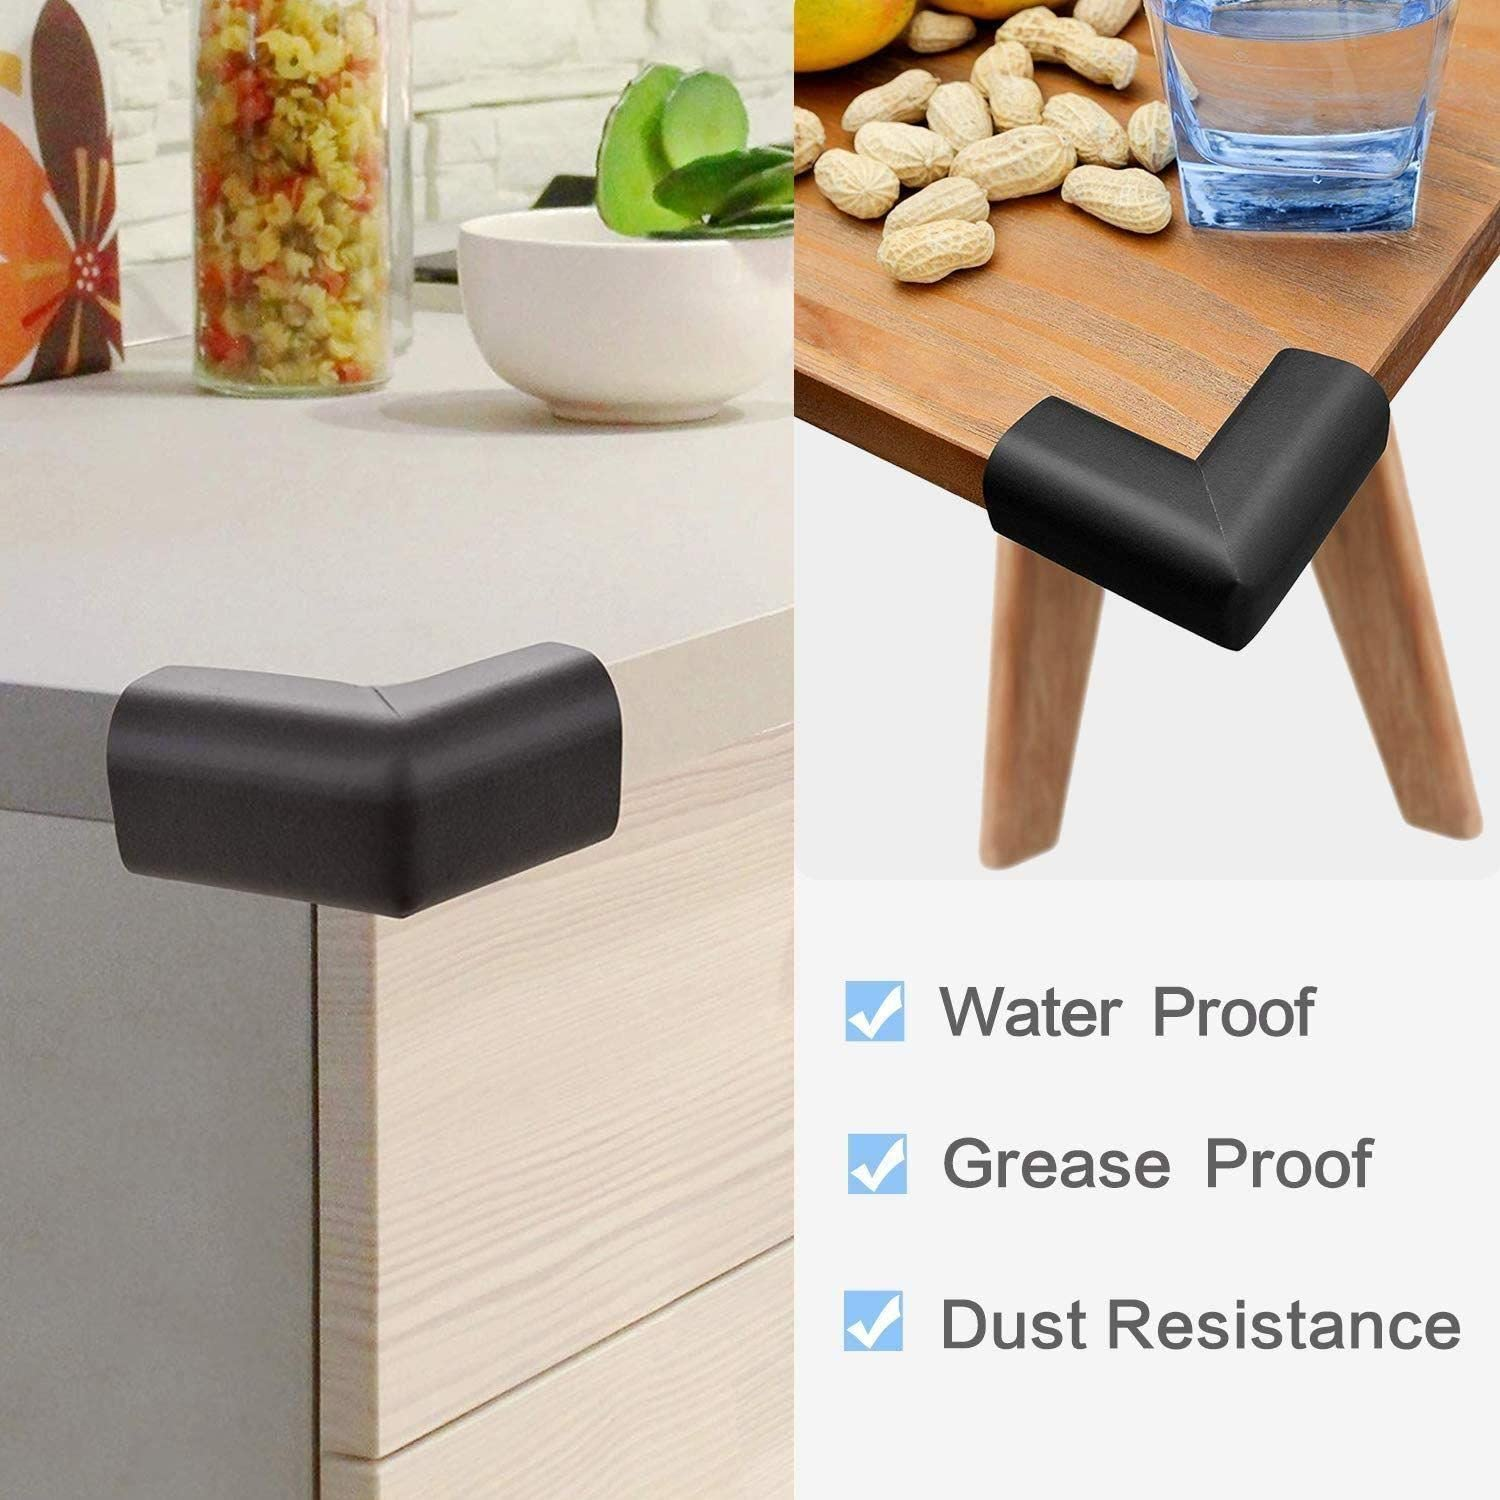 Corners /& Edge Set - Black Baby Proofing Safety Corner Guards and Protective Edge Strip